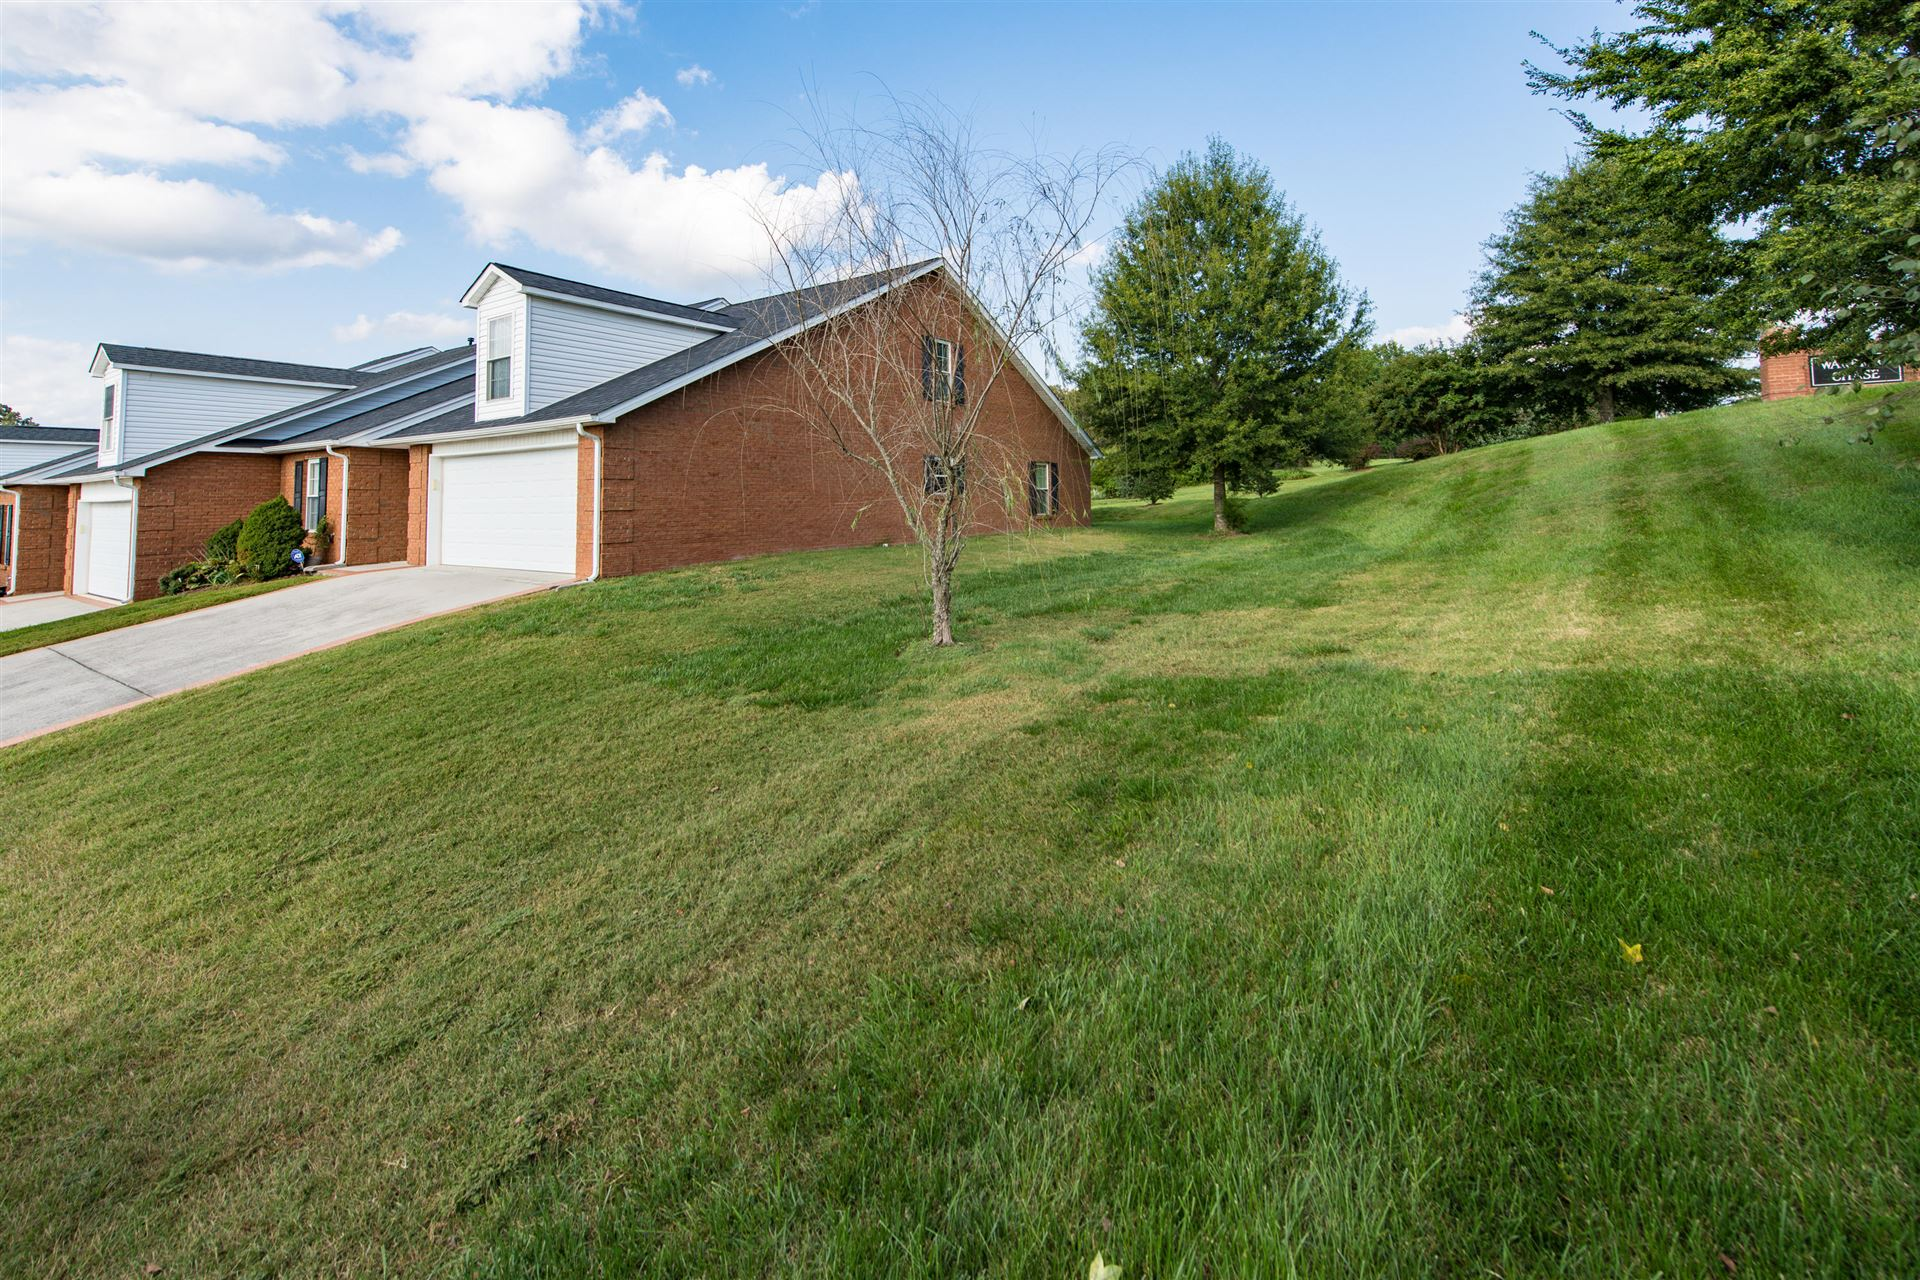 Photo of 275 Blackfoot Way, Lenoir City, TN 37772 (MLS # 1129747)